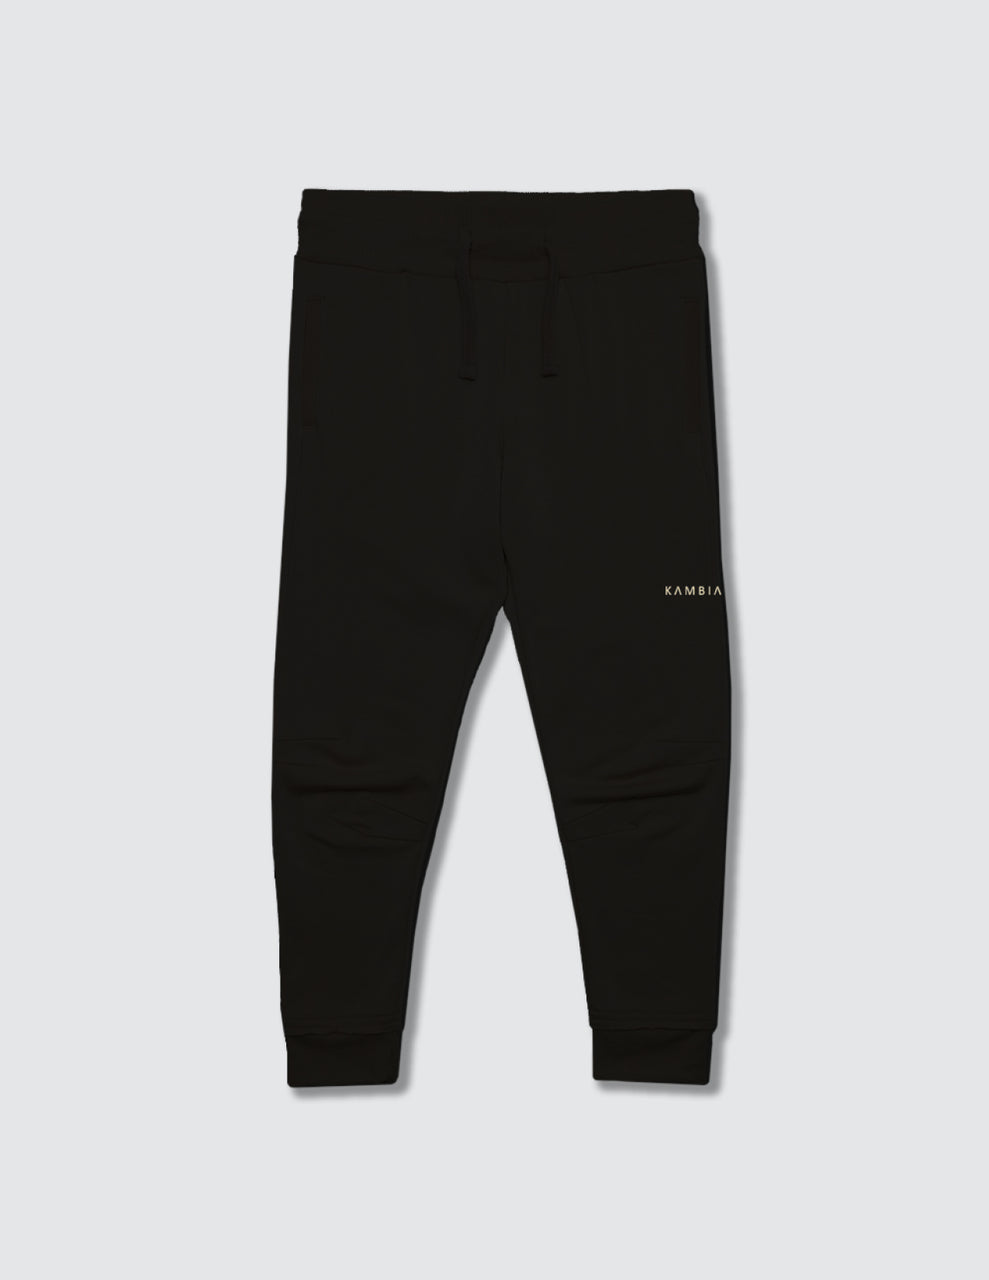 Kid's Clothing - Sweatpants - Black